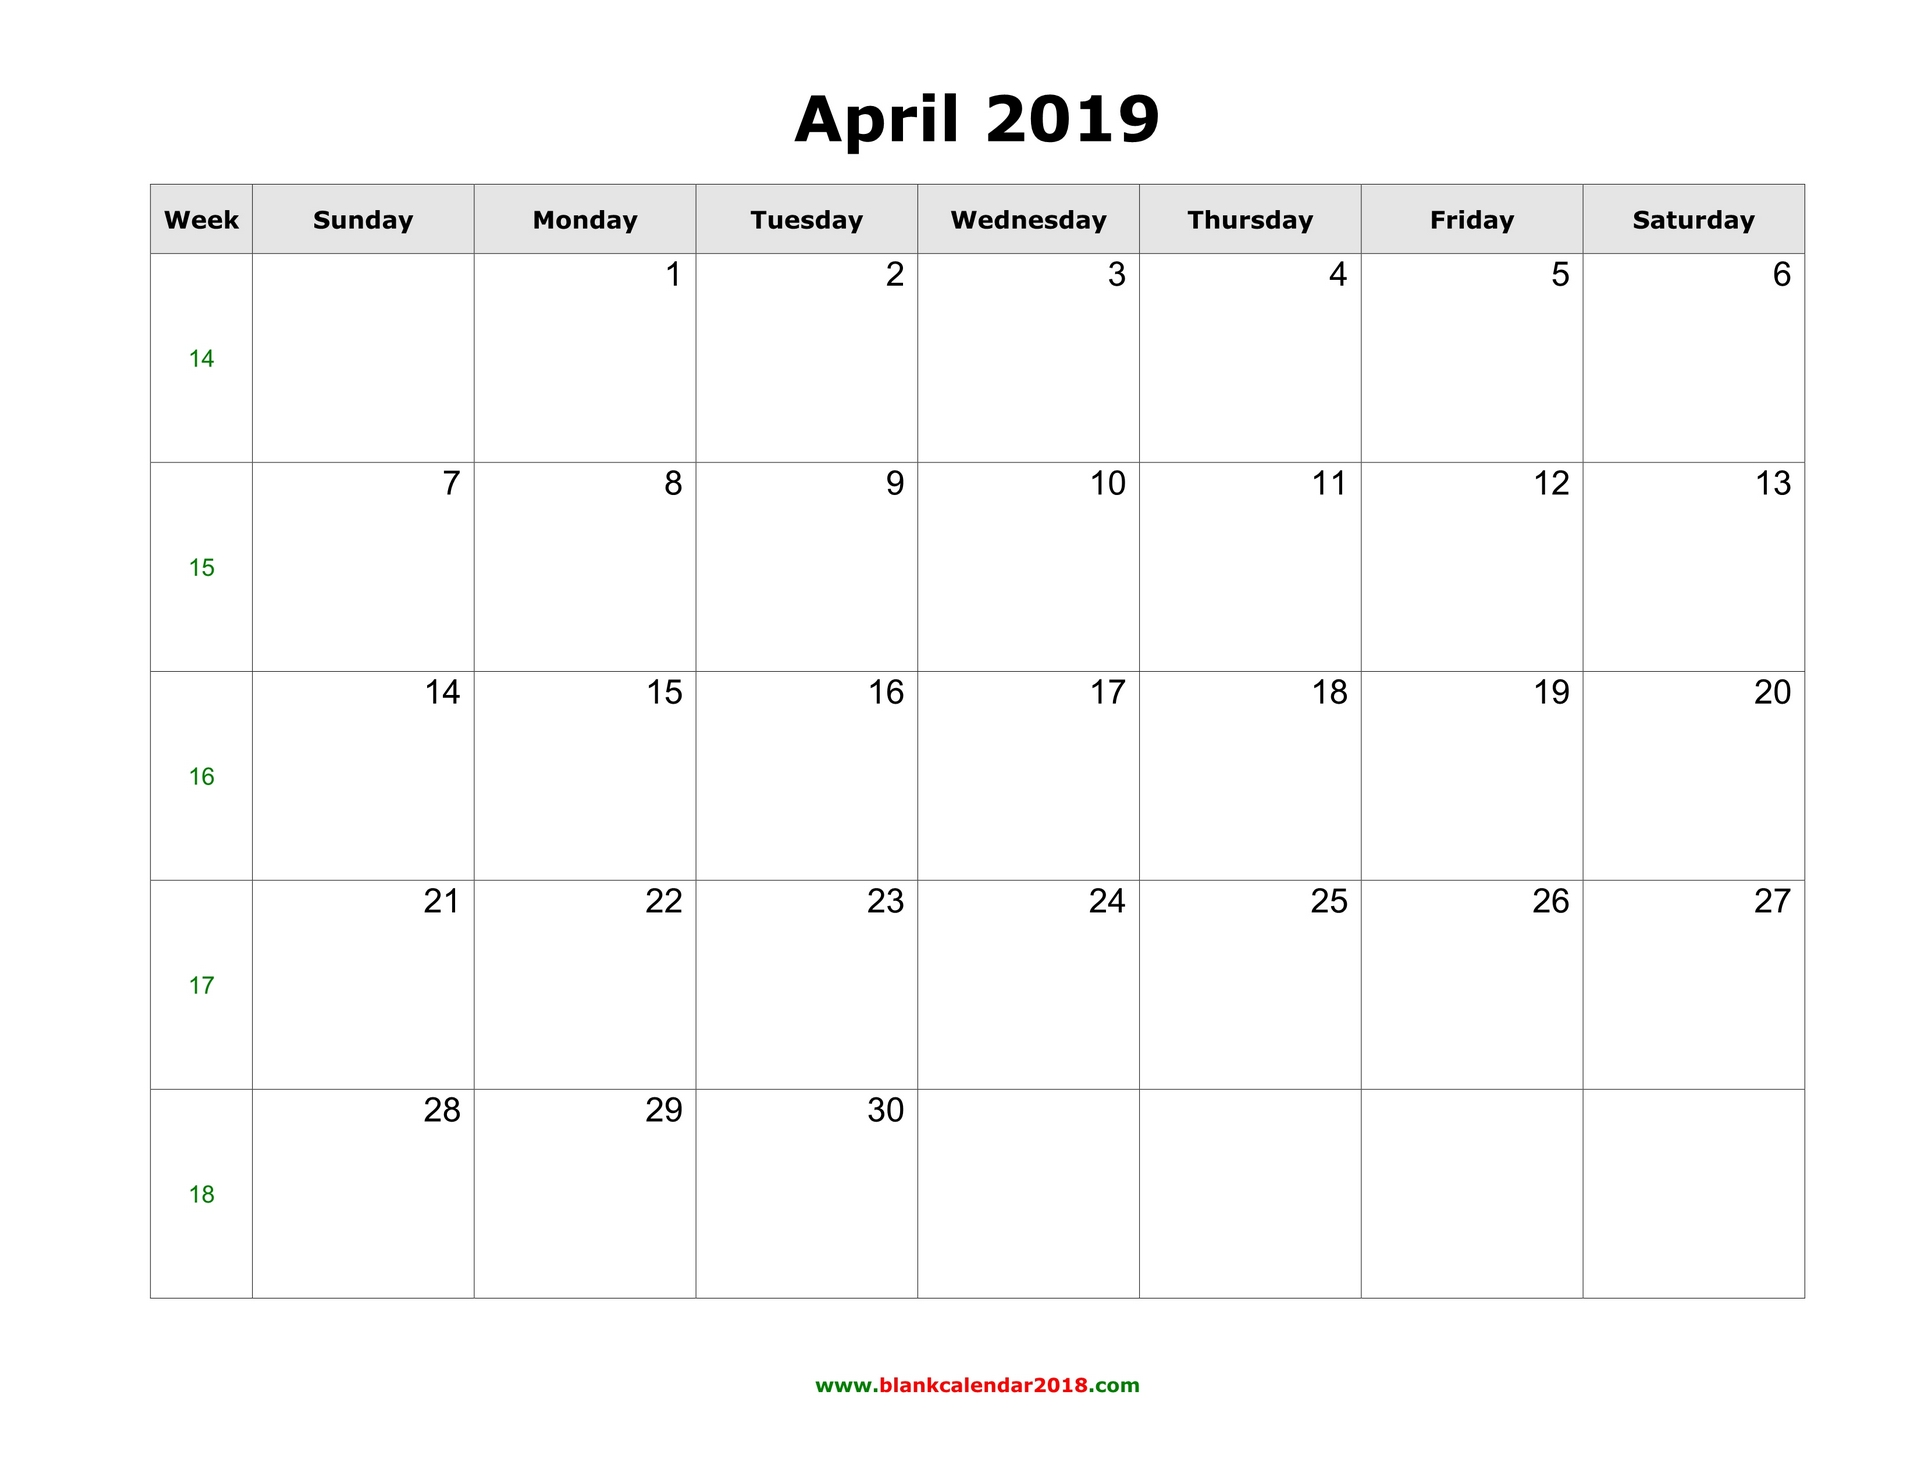 Remarkable image in april calender printable